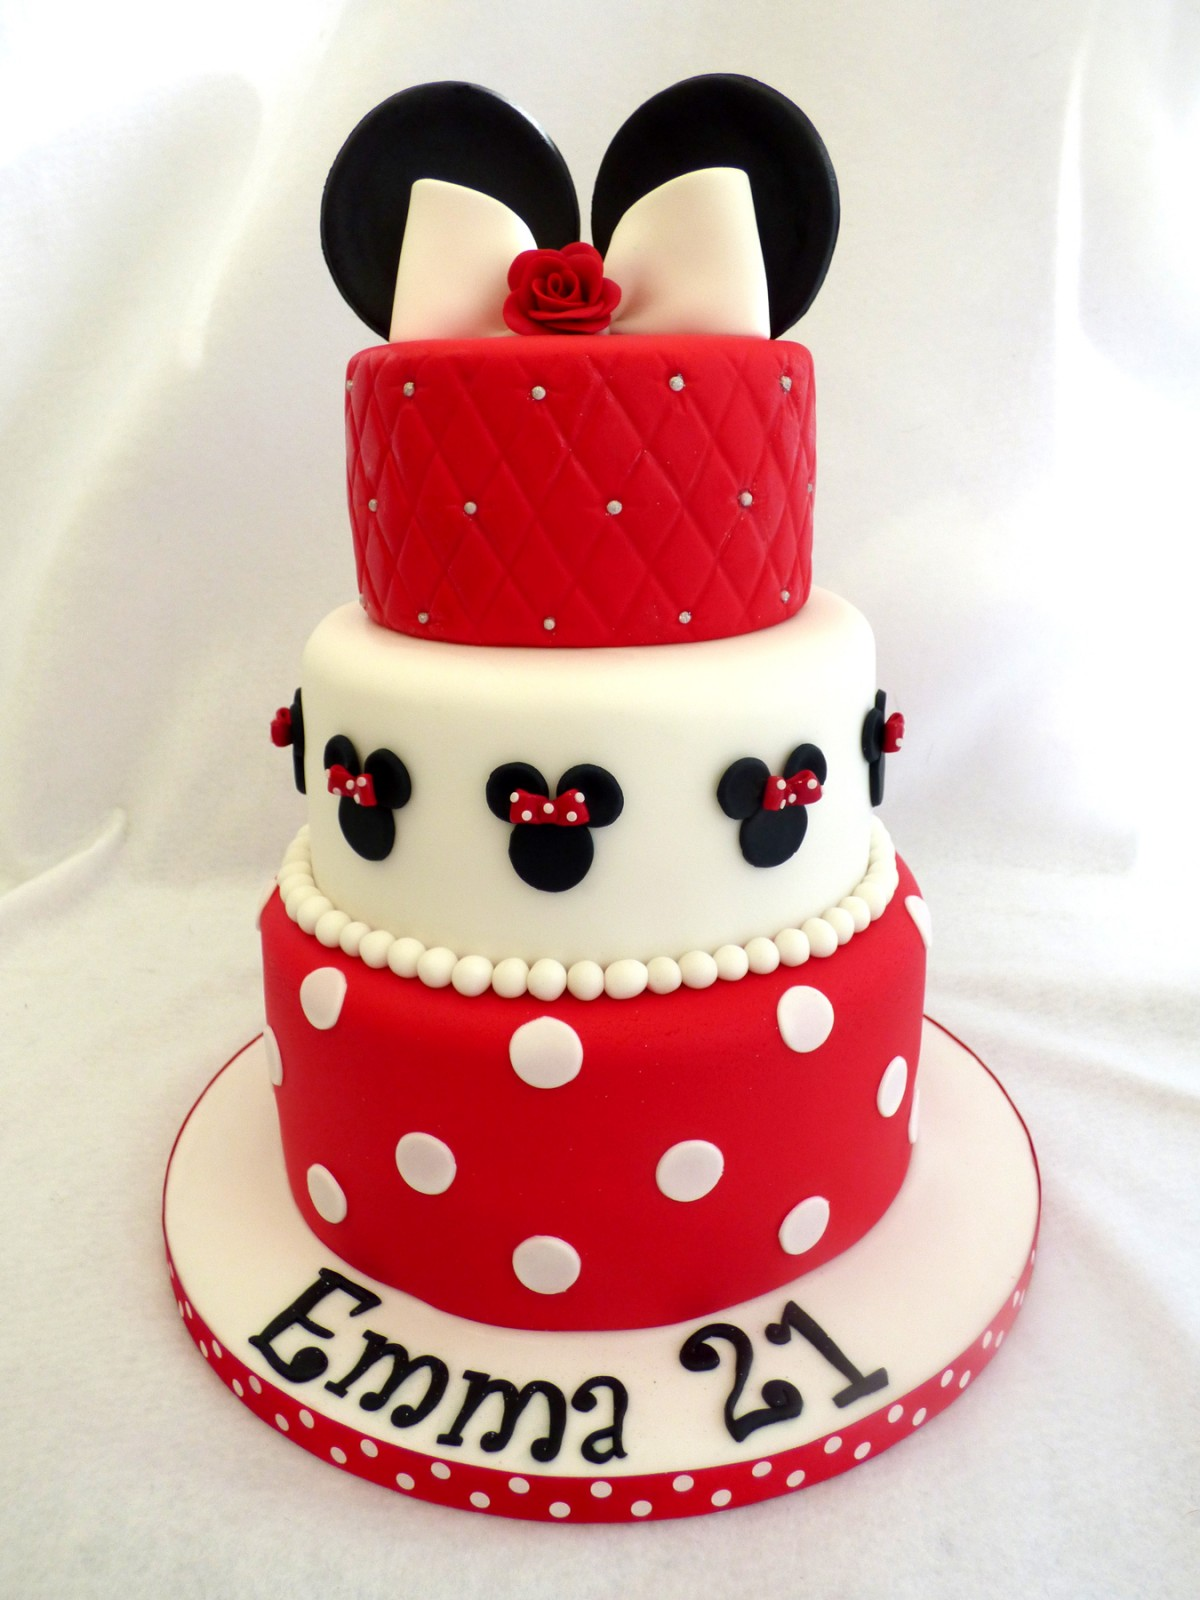 Tier Minnie Mouse Inspired Birthday Cake « Susies Cakes